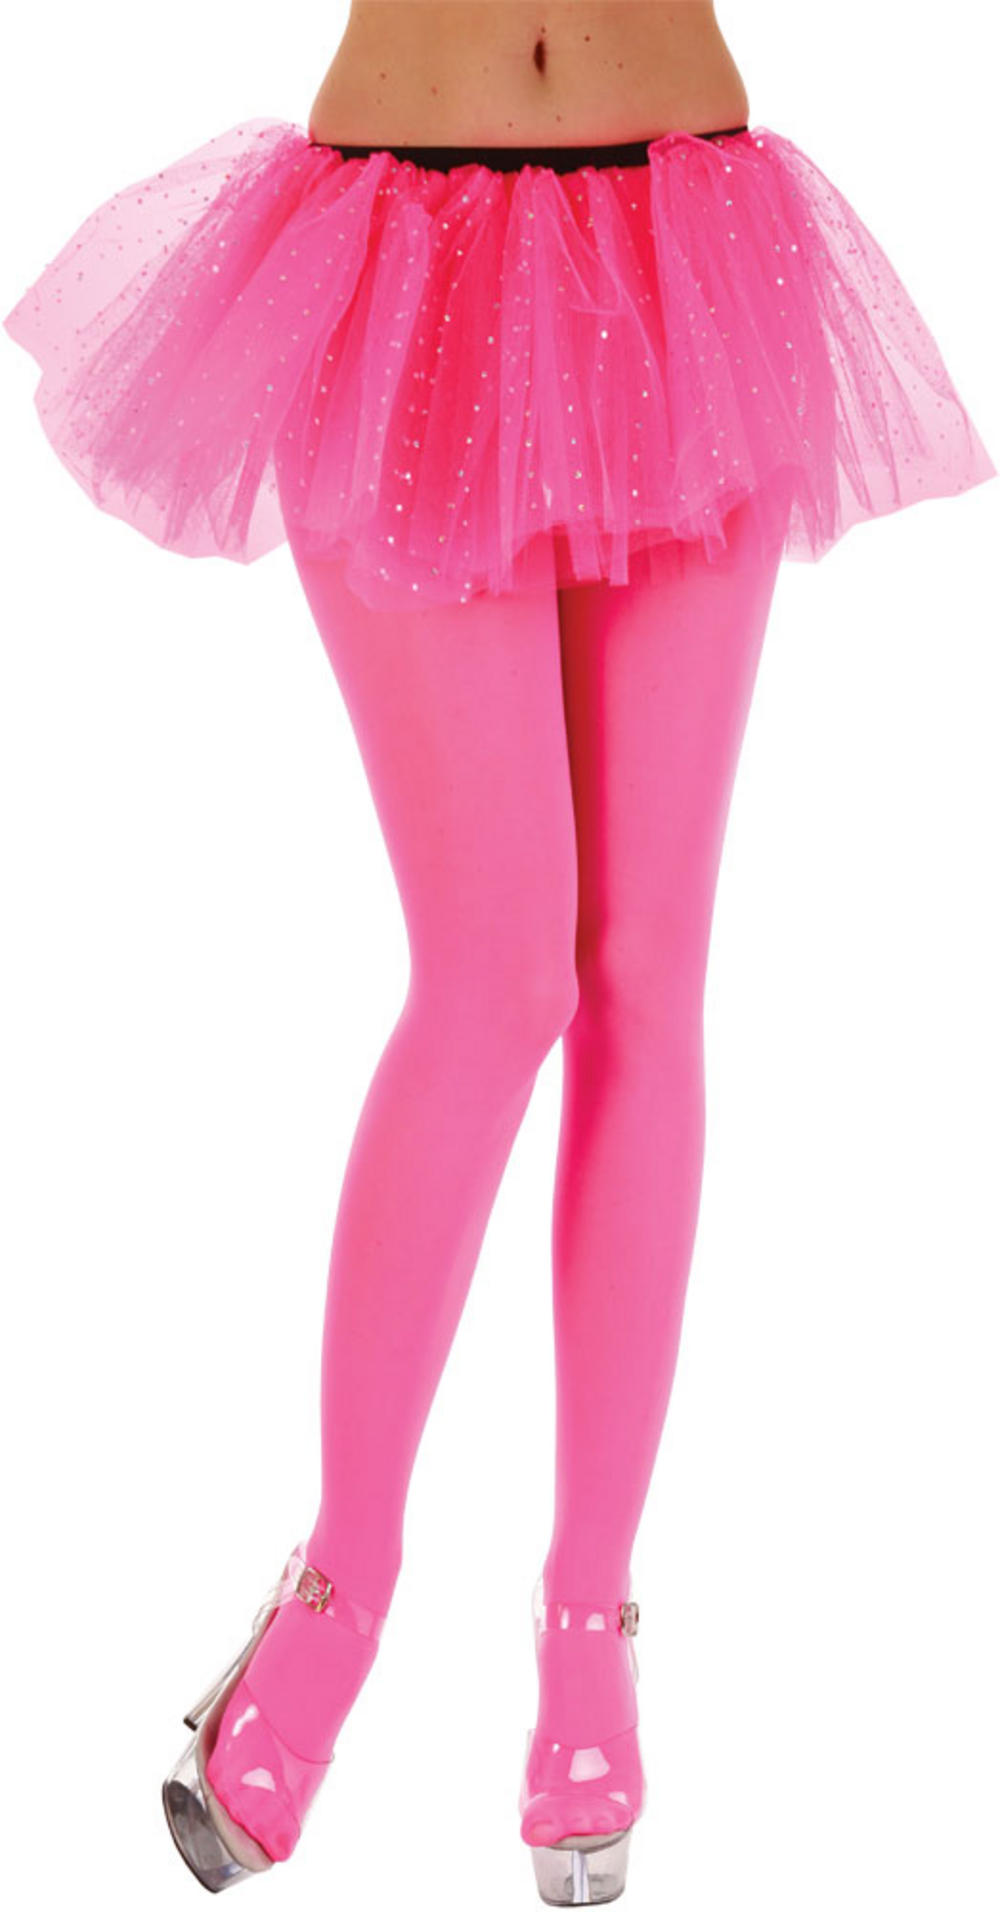 Opaque Neon Pink Tights | 80s Accessories